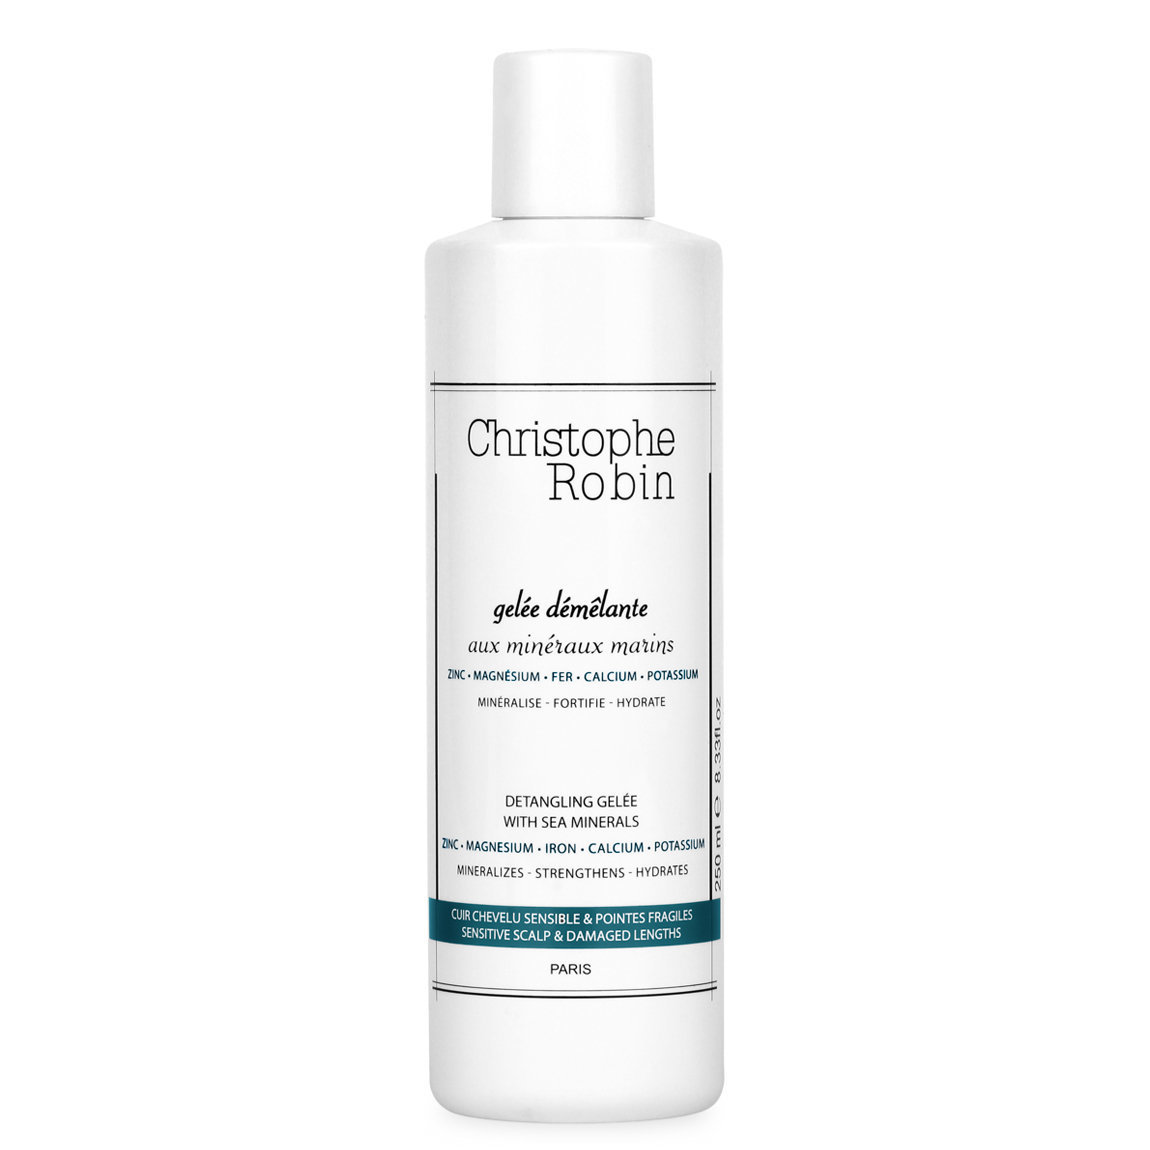 Christophe Robin Detangling Gelee with Sea Minerals alternative view 1 - product swatch.